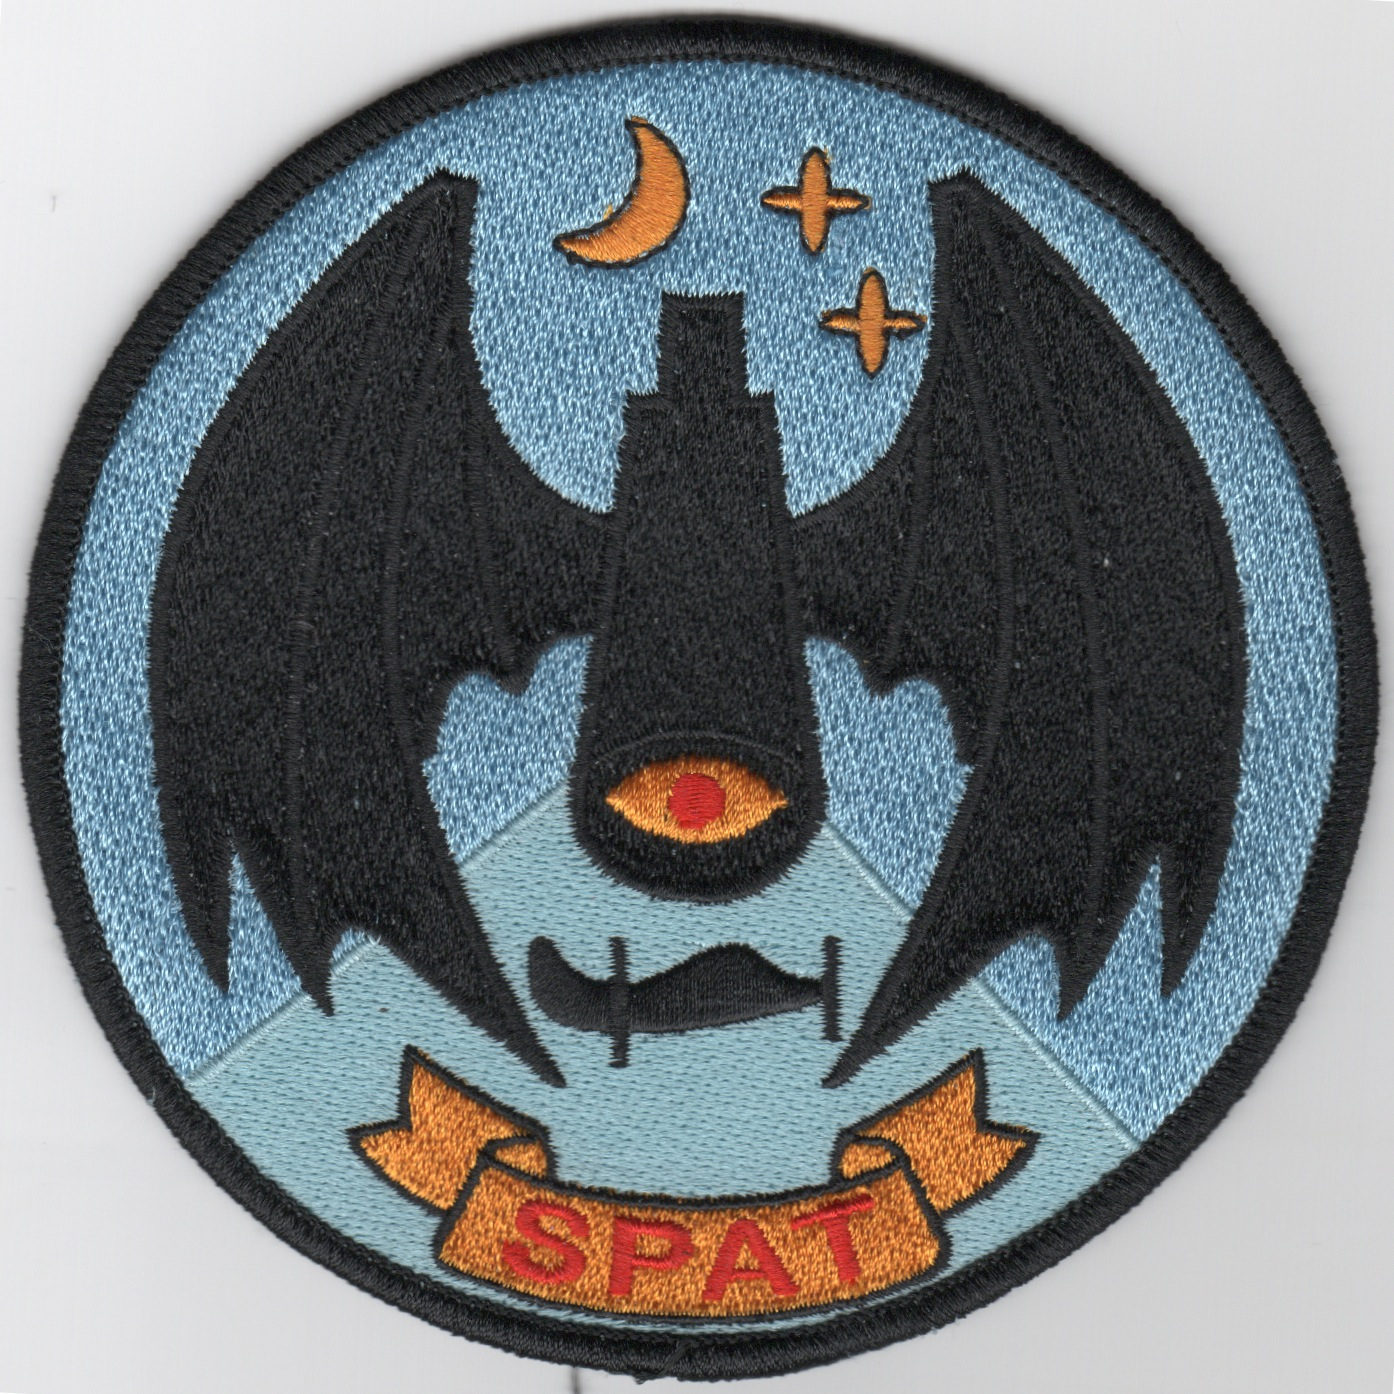 87FTS Vietnam-era 'SPAT' Patch (Authentic)